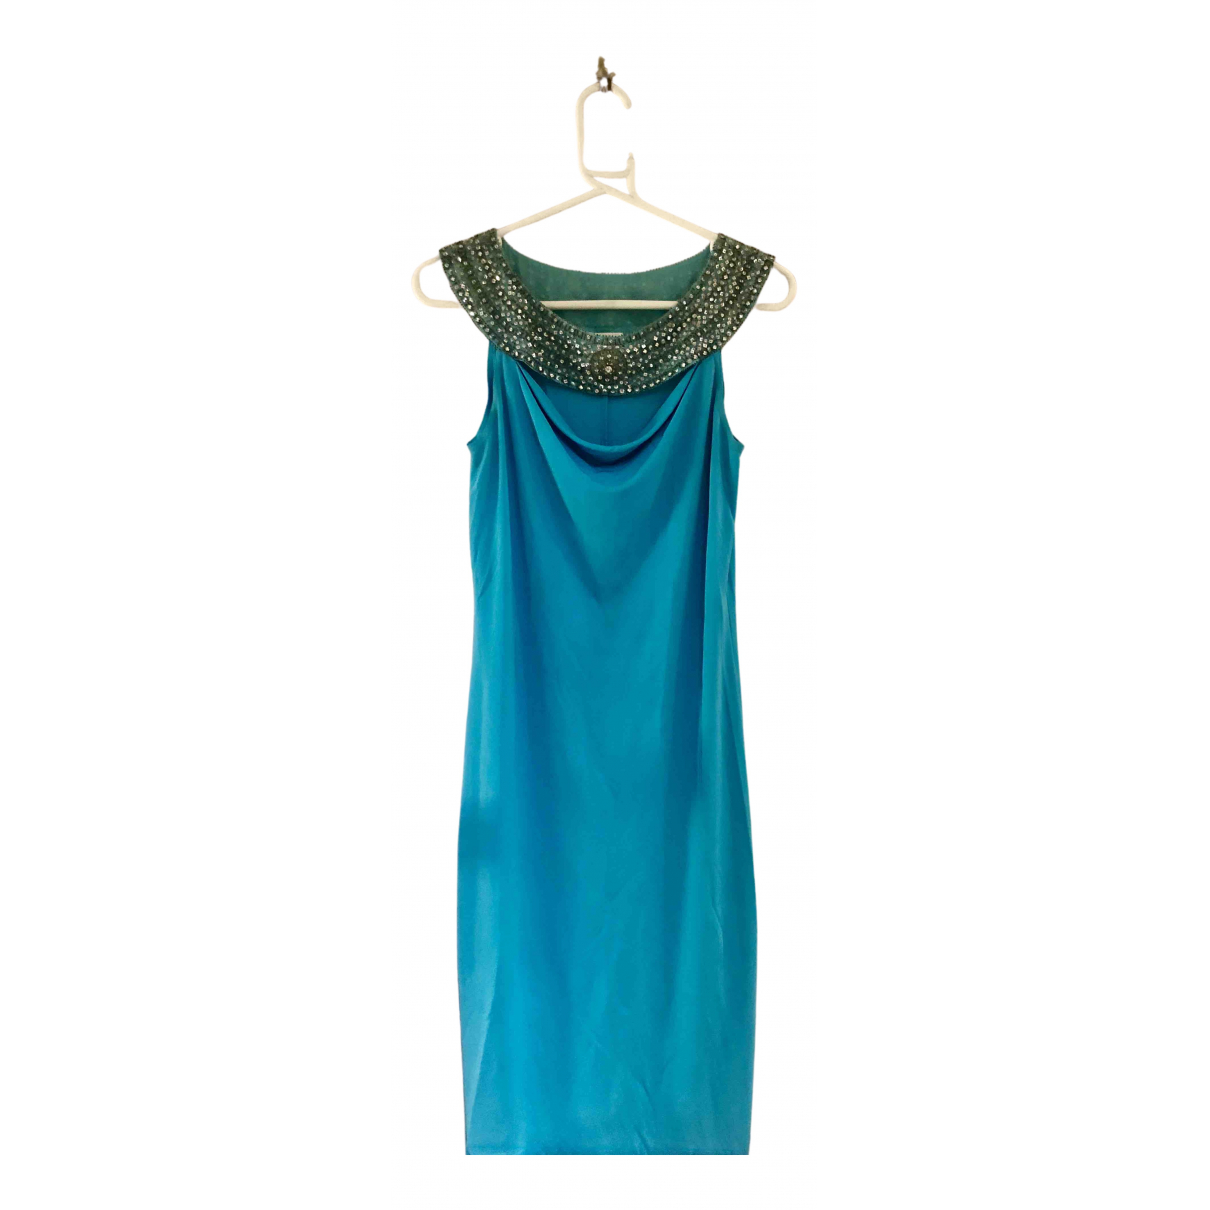 Escada \N Kleid in  Blau Polyester